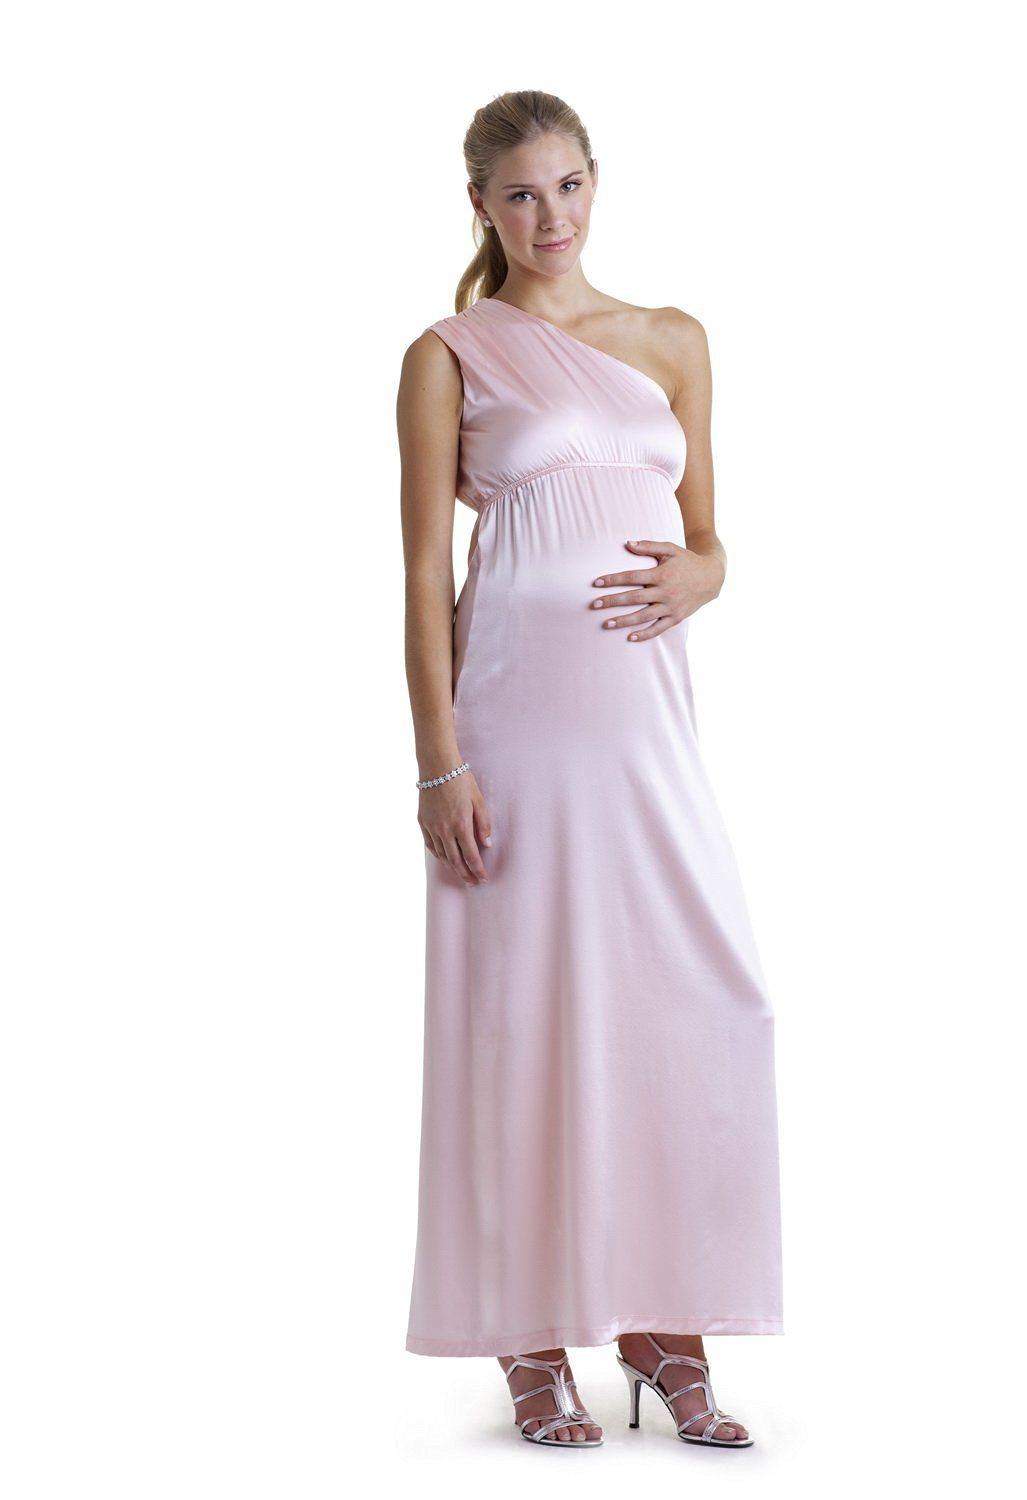 Joiful maternity long dress with one shoulder long maternity joiful maternity long dress with one shoulder long maternity dress with one shoulder sleevless ombrellifo Images